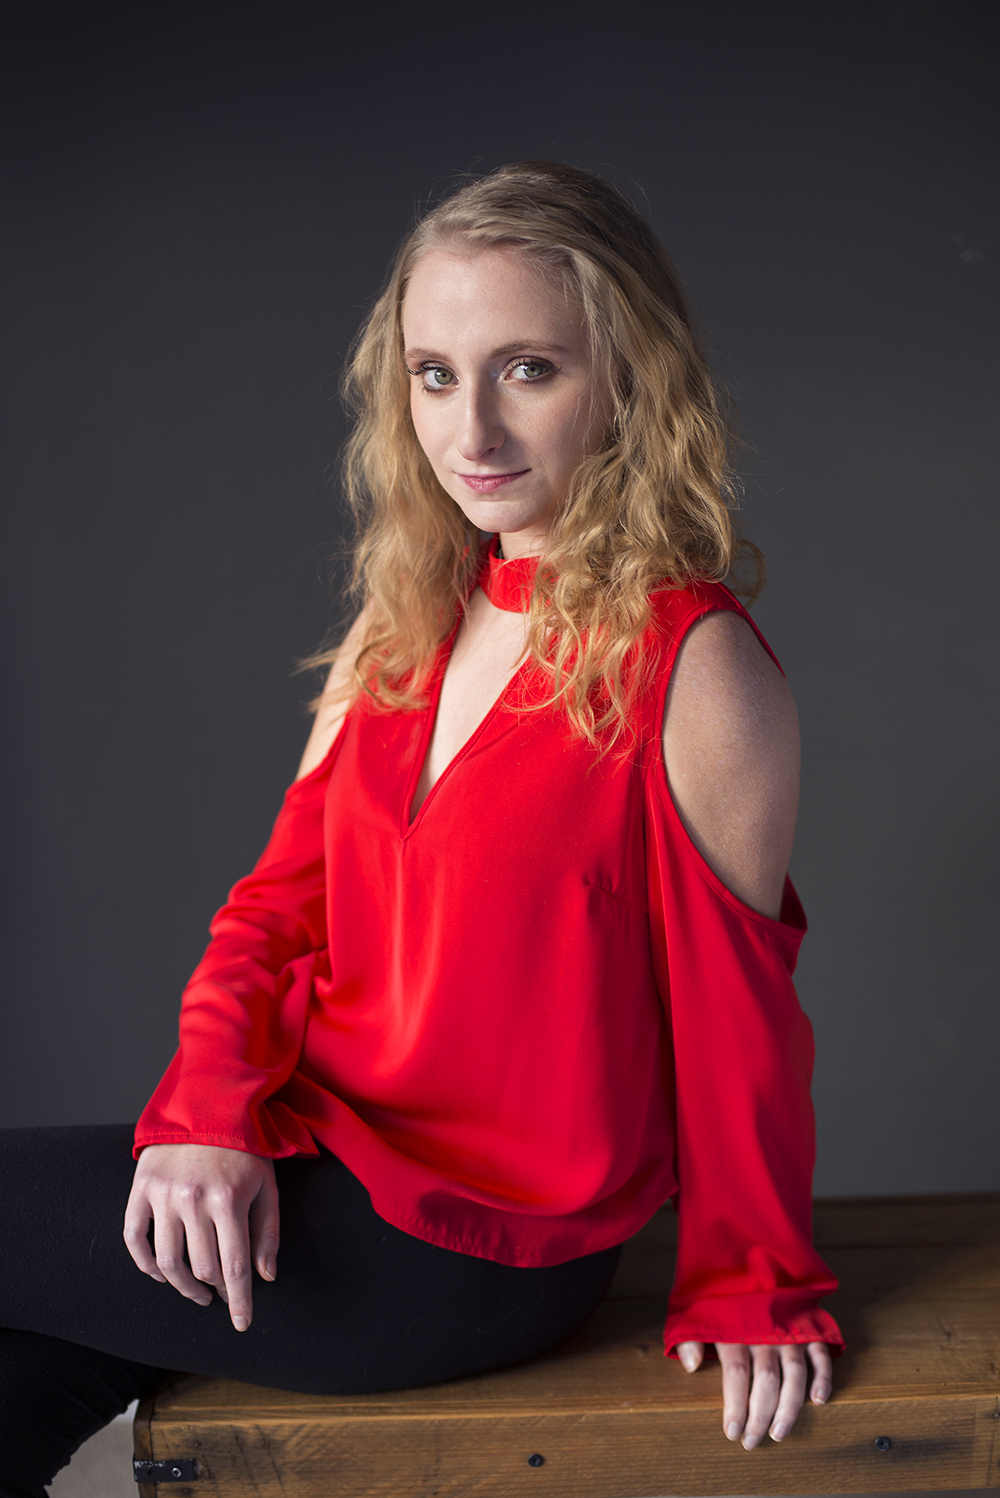 Charlotte's red top looks so striking against the dark background! -